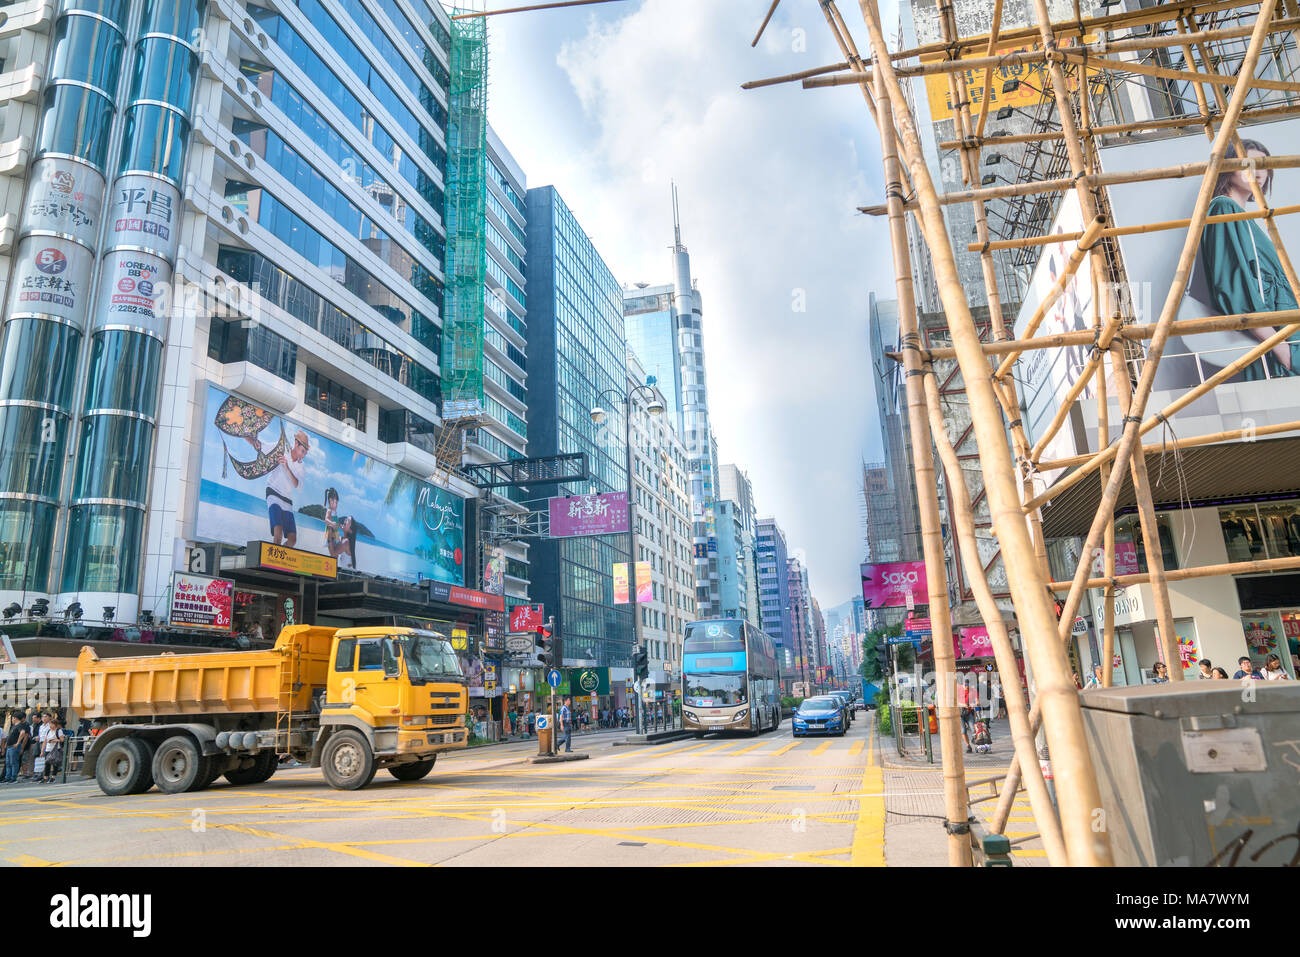 KOWLOON, HONG KONG - SEPTEMBER 18 2017; Typically Asian downtown city street  scene with modern buildings on one side bamboo scaffolding across street - Stock Image